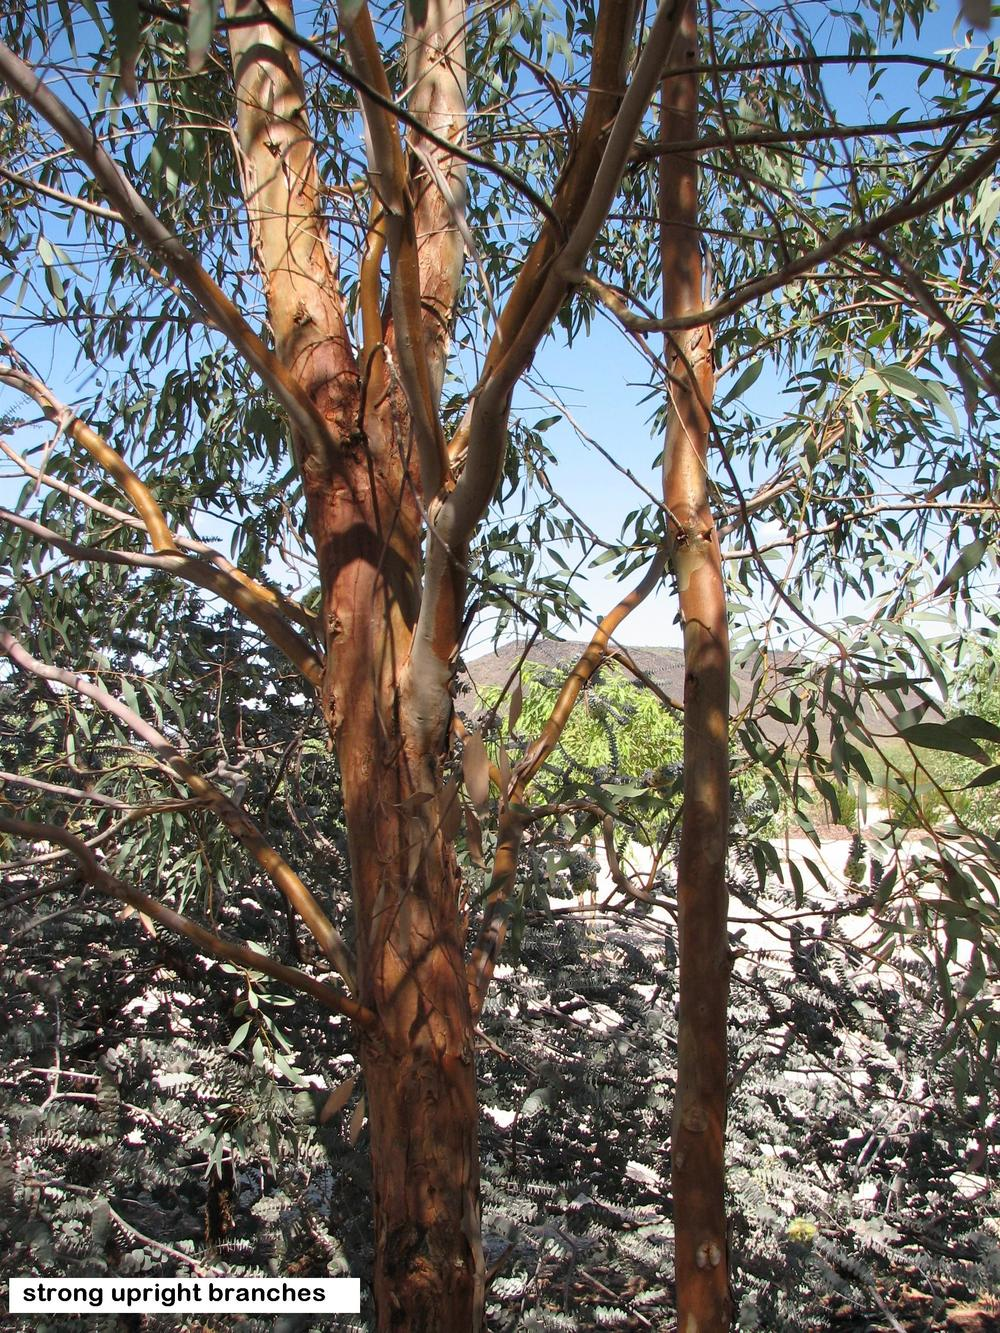 t8 E. sideroxylon  upright strong wind resistant branches.jpg